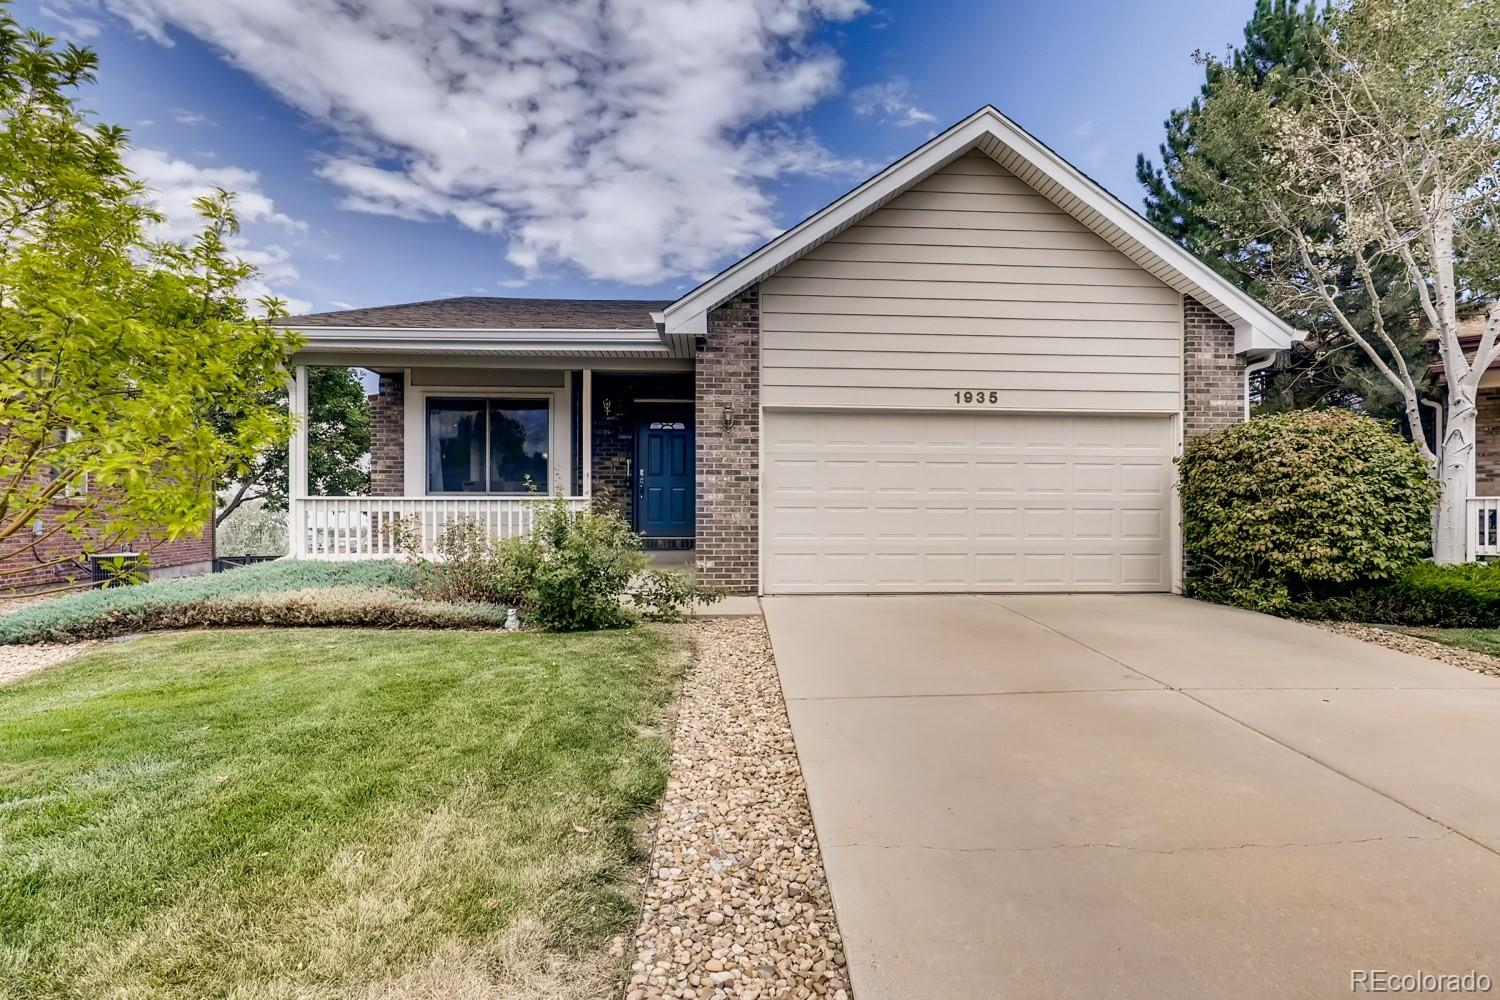 MLS# 9153958 - 1935 E 135th Place, Thornton, CO 80241